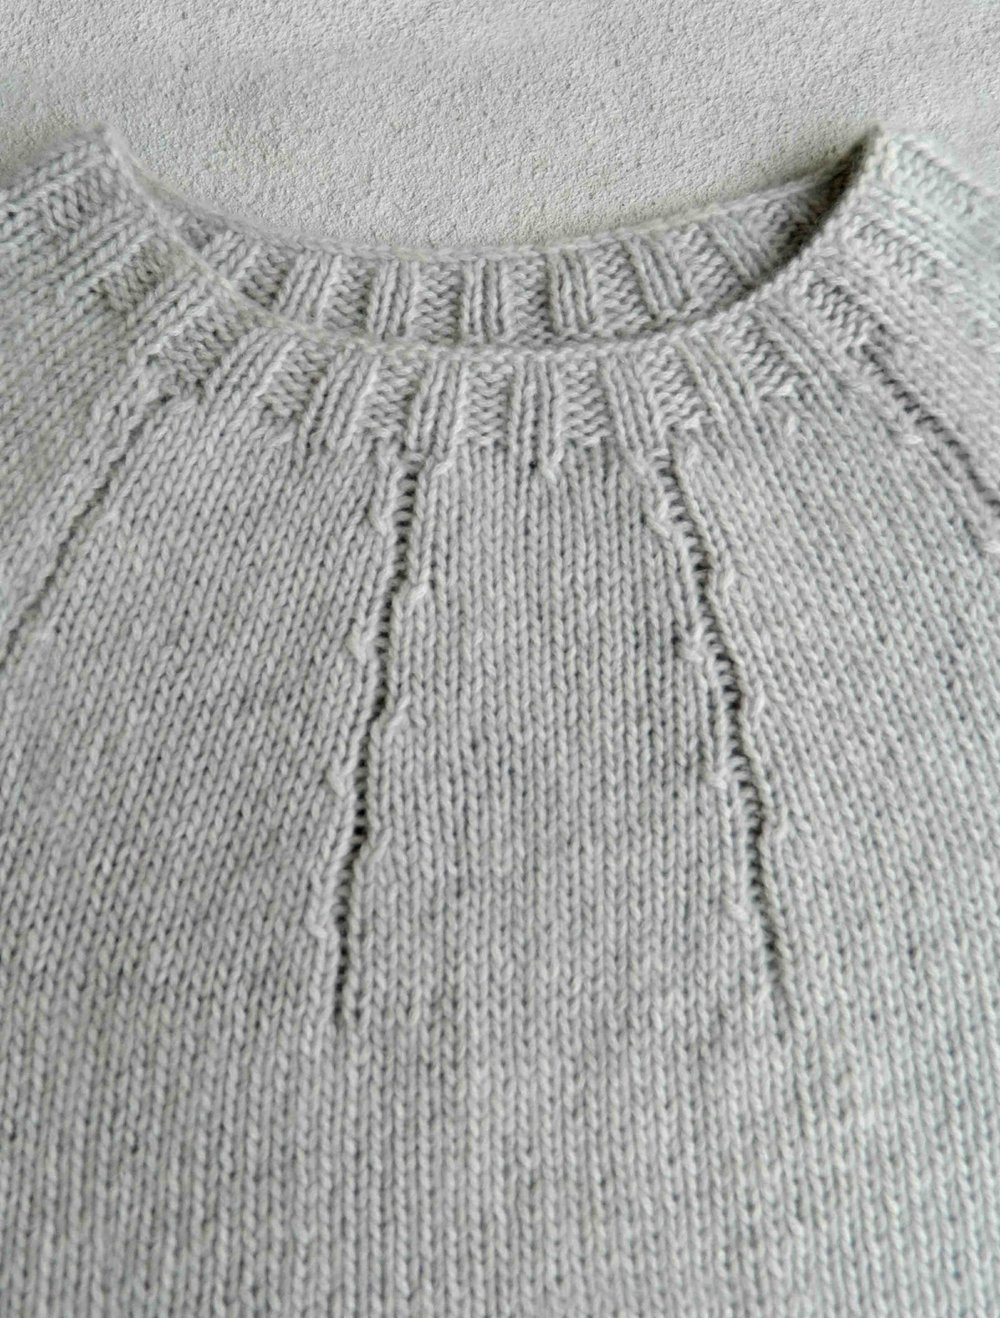 Giuliano&GiusyMarelli_Tunic_Neck Detail.jpg